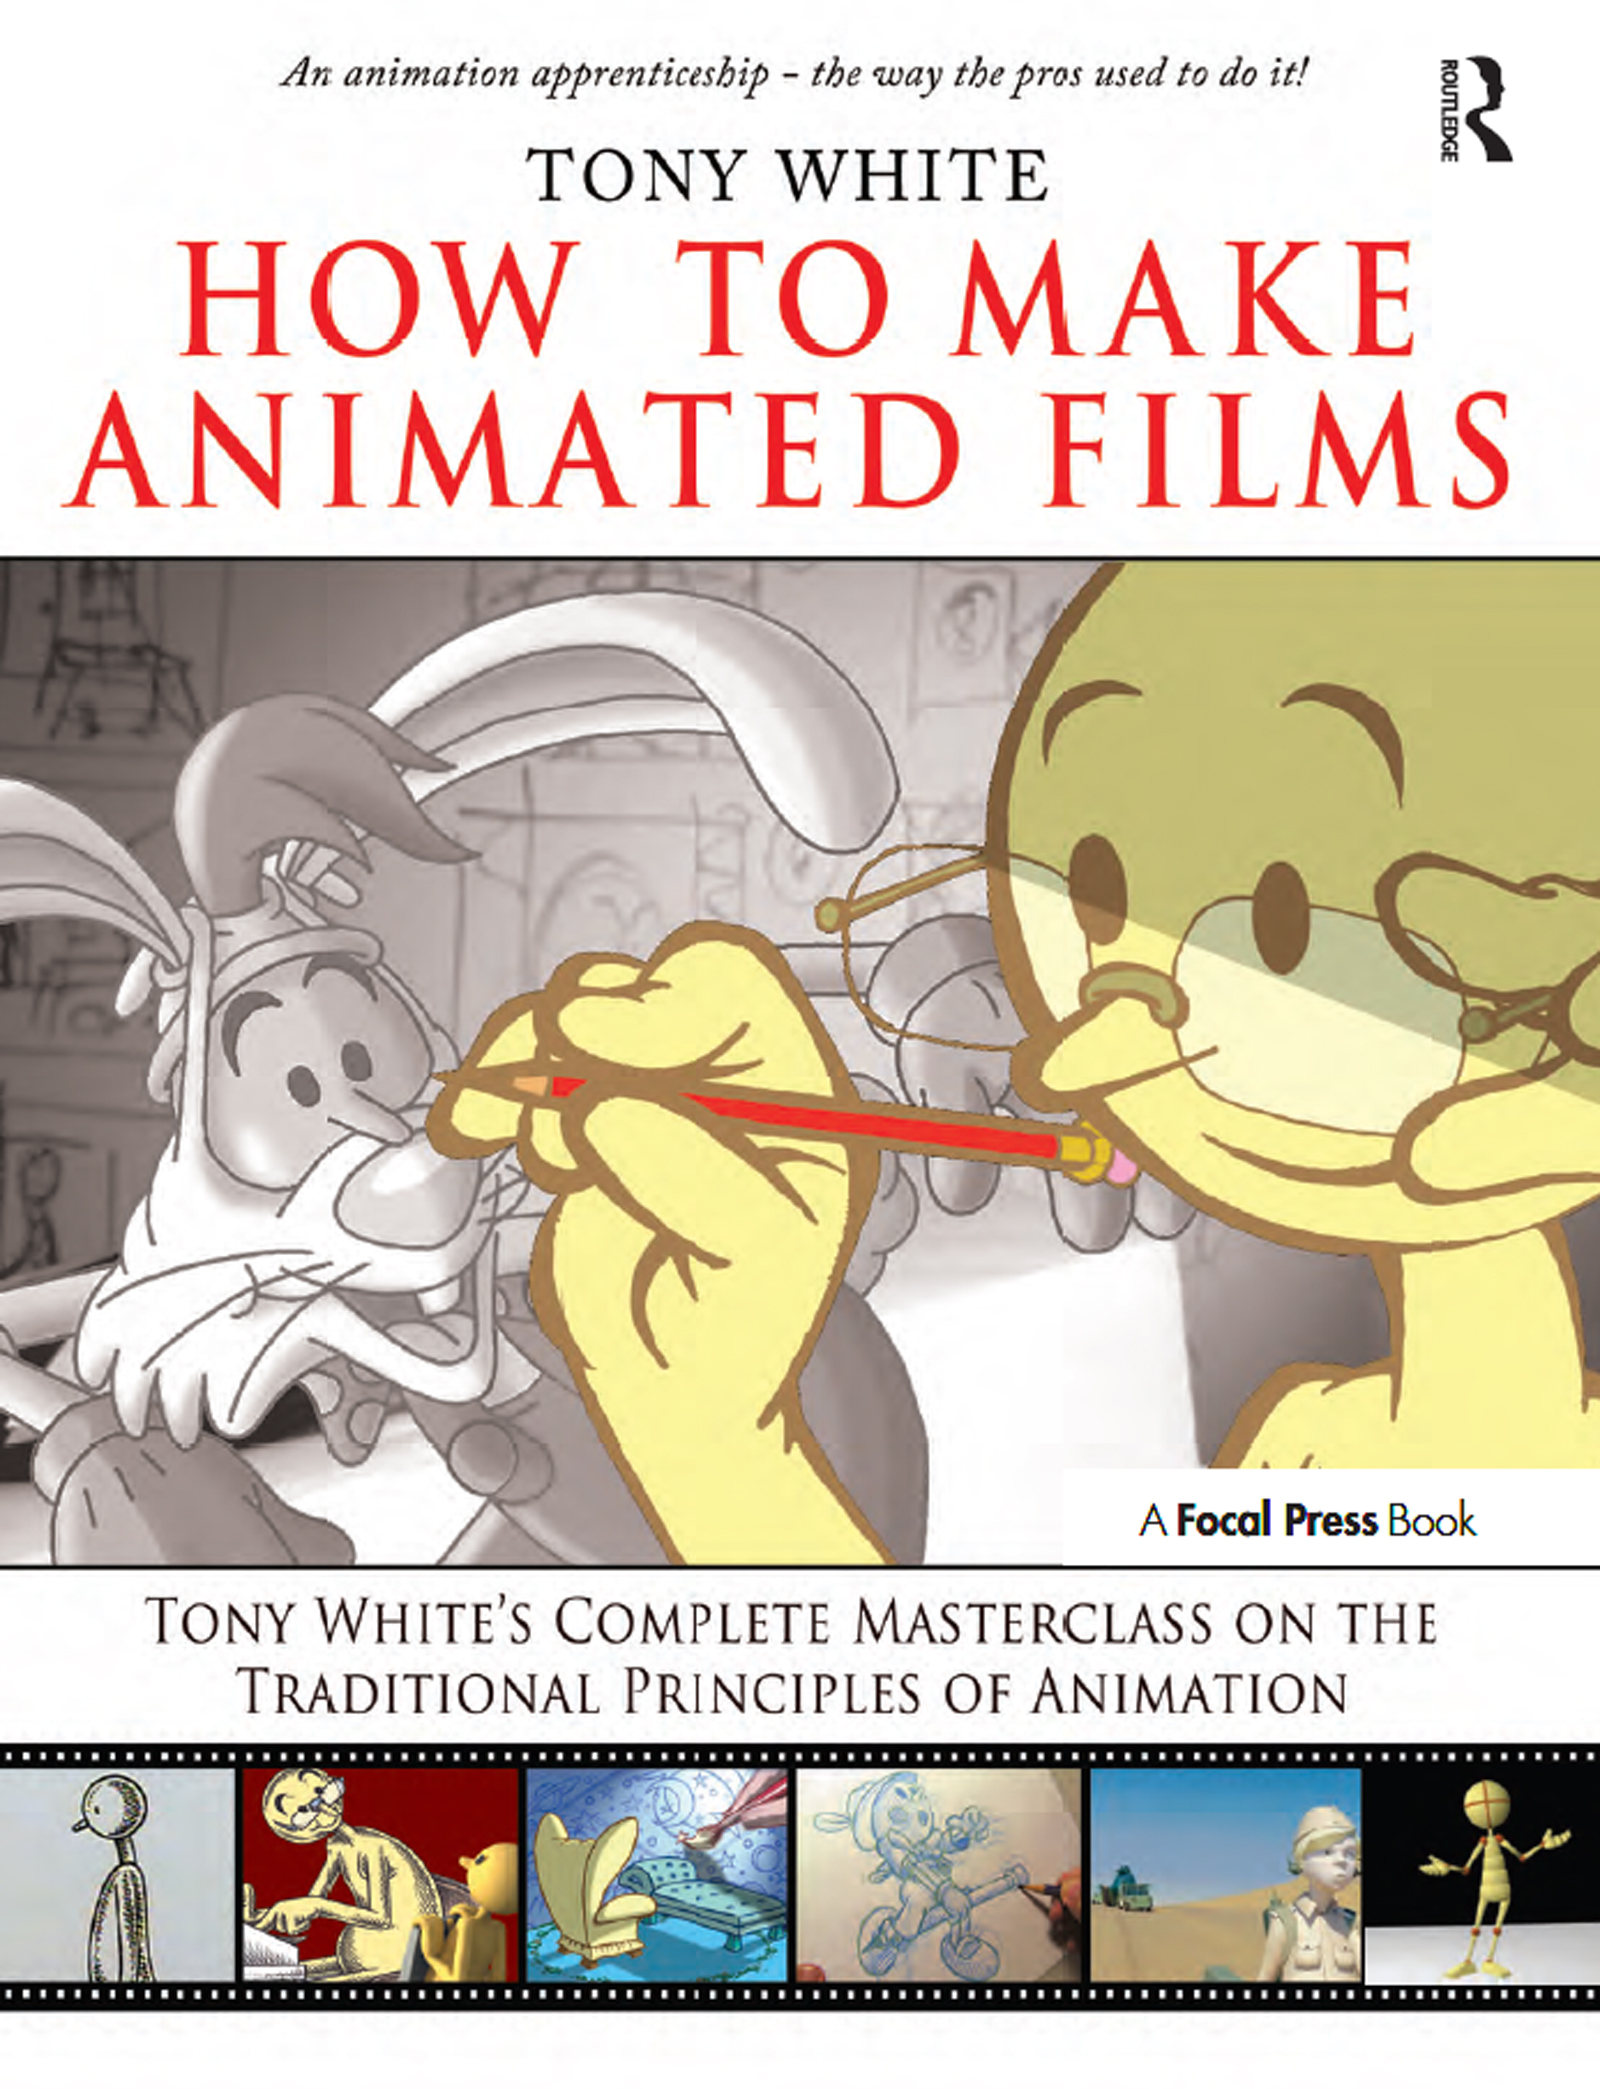 How to Make Animated Films: Tony White's Masterclass Course on the Traditional Principles of Animation book cover